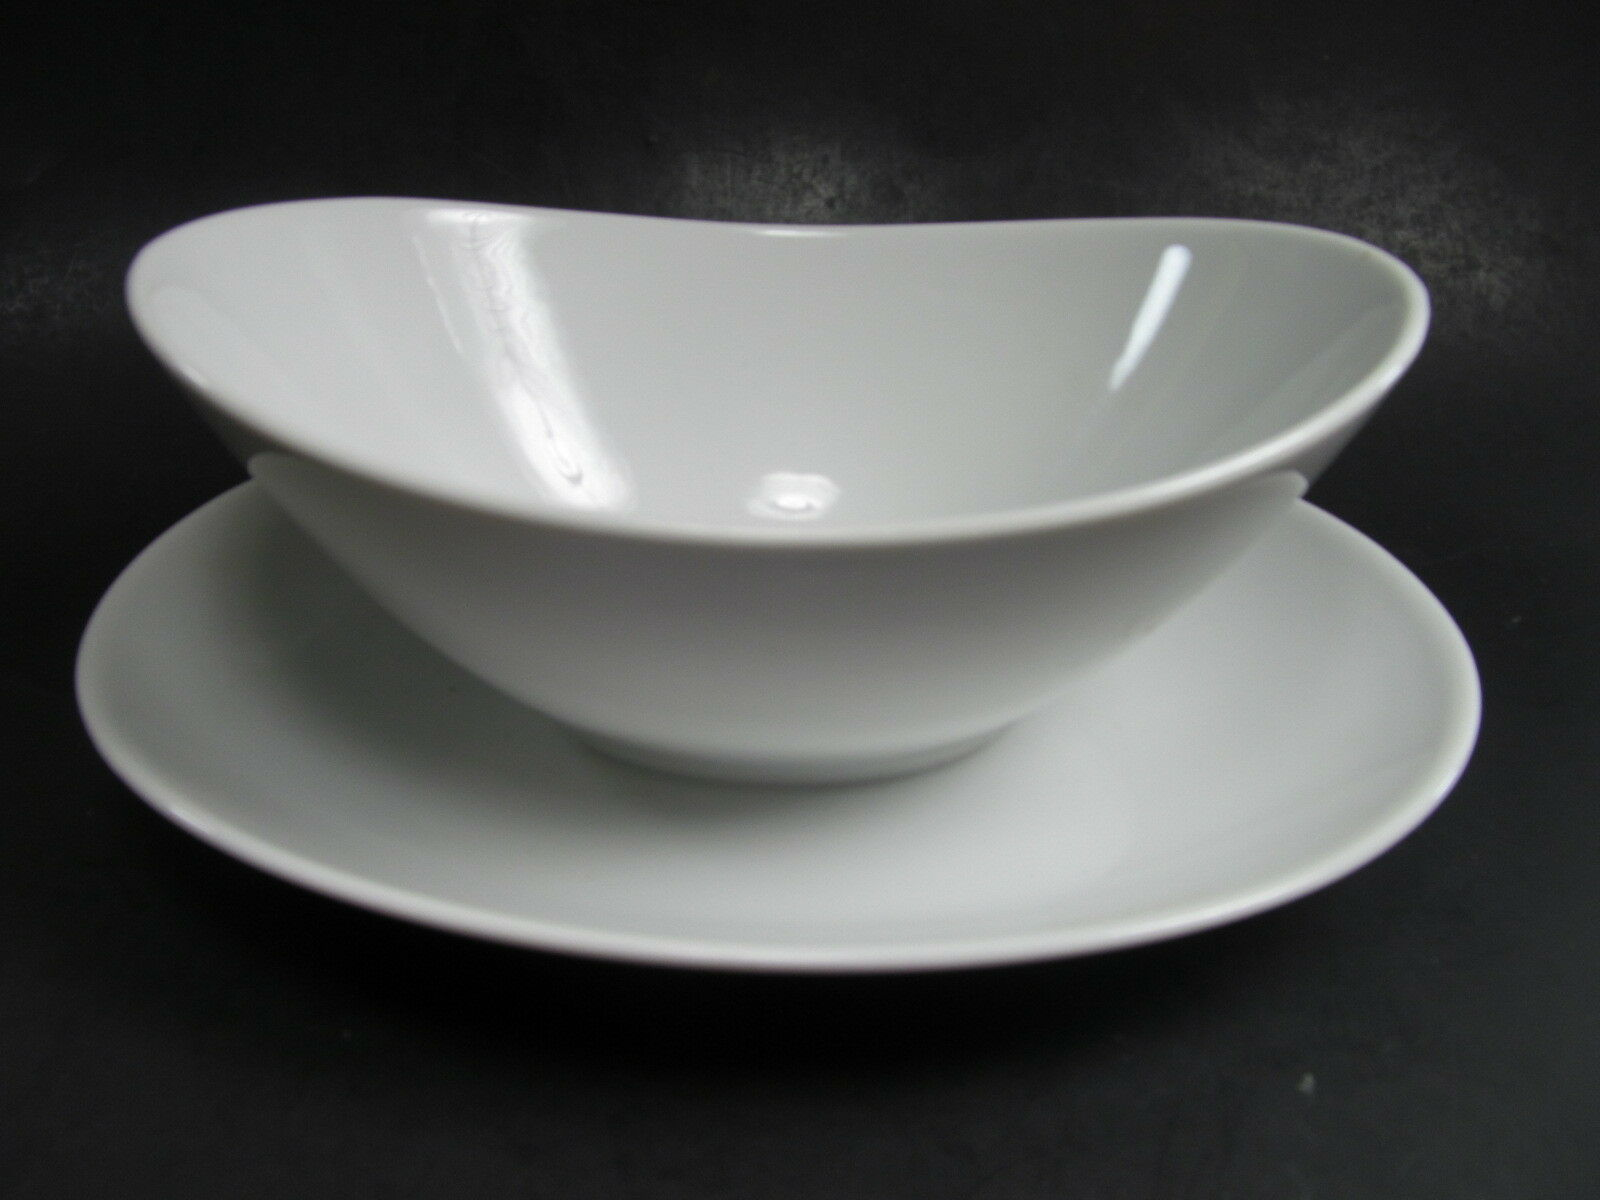 Primary image for Mikasa Sophisticate White Gravy Boat Attached Underplate